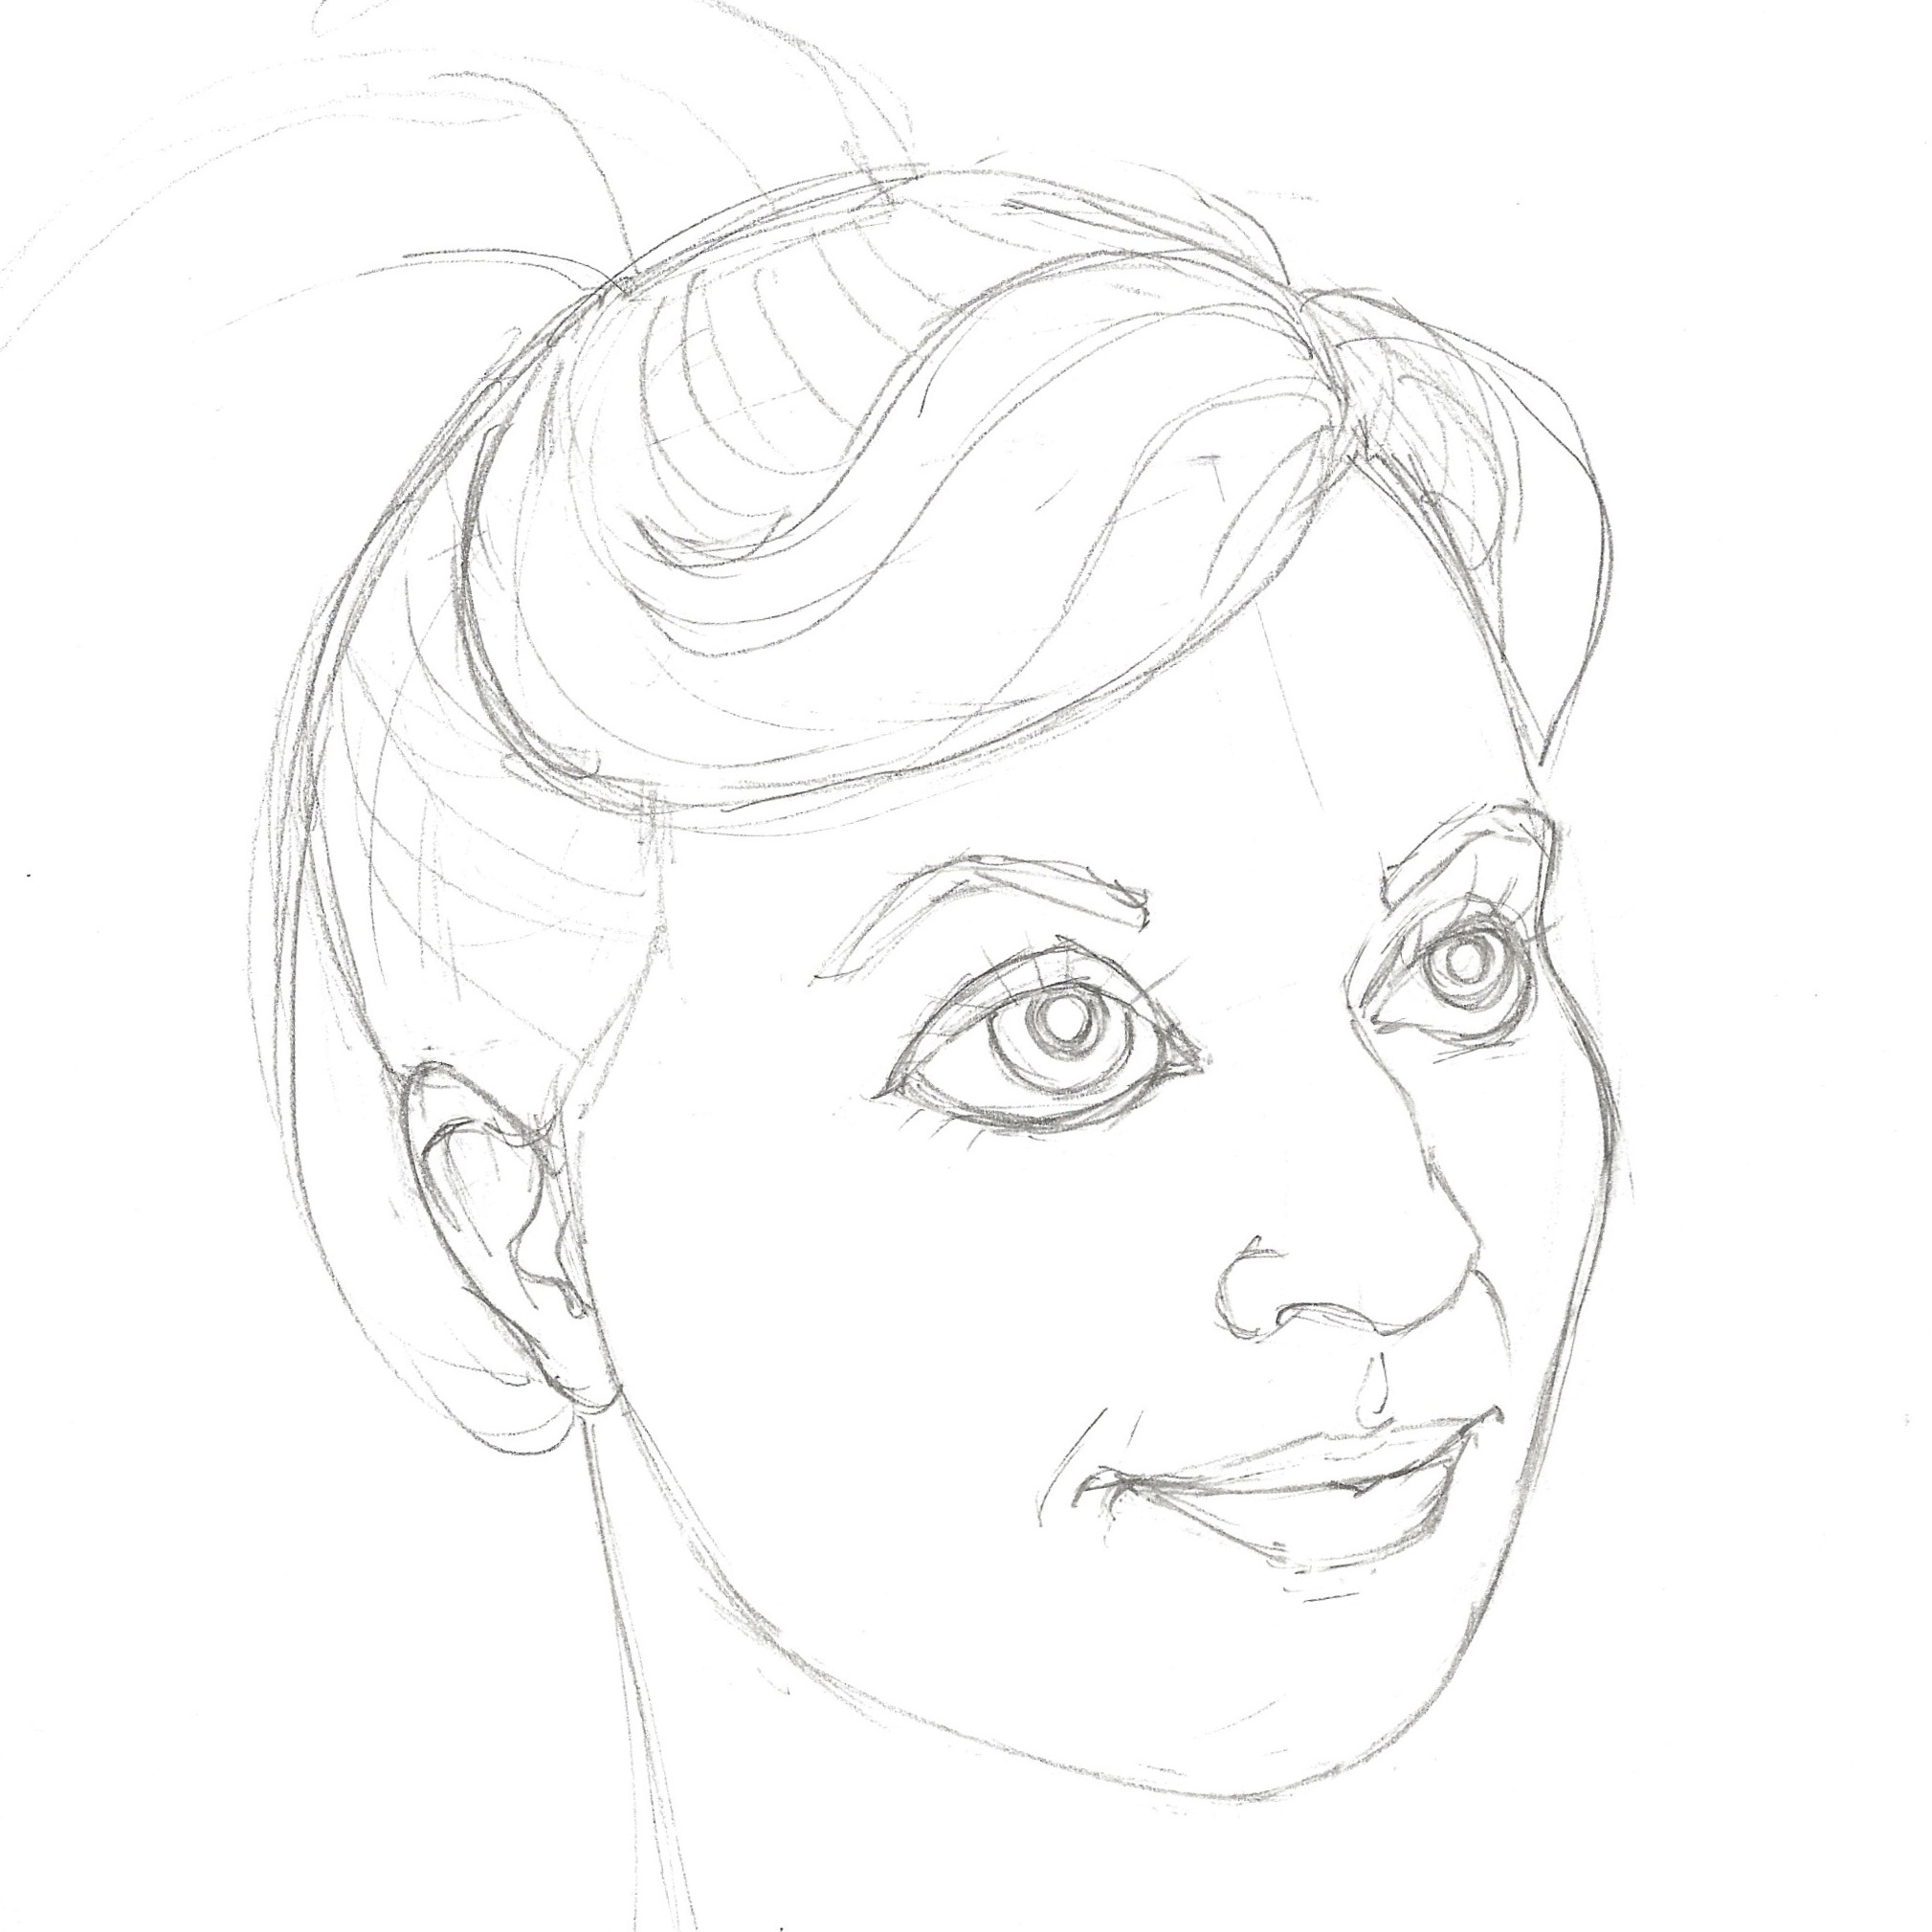 Pencil Drawing - I used the photo as inspiration for the pencil drawing. I took care to incorporate some common characteristics of the animated princesses like enlarged eyes and shortened facial length. I wanted to created an idealized storybook character of myself, but to remain recognizable.